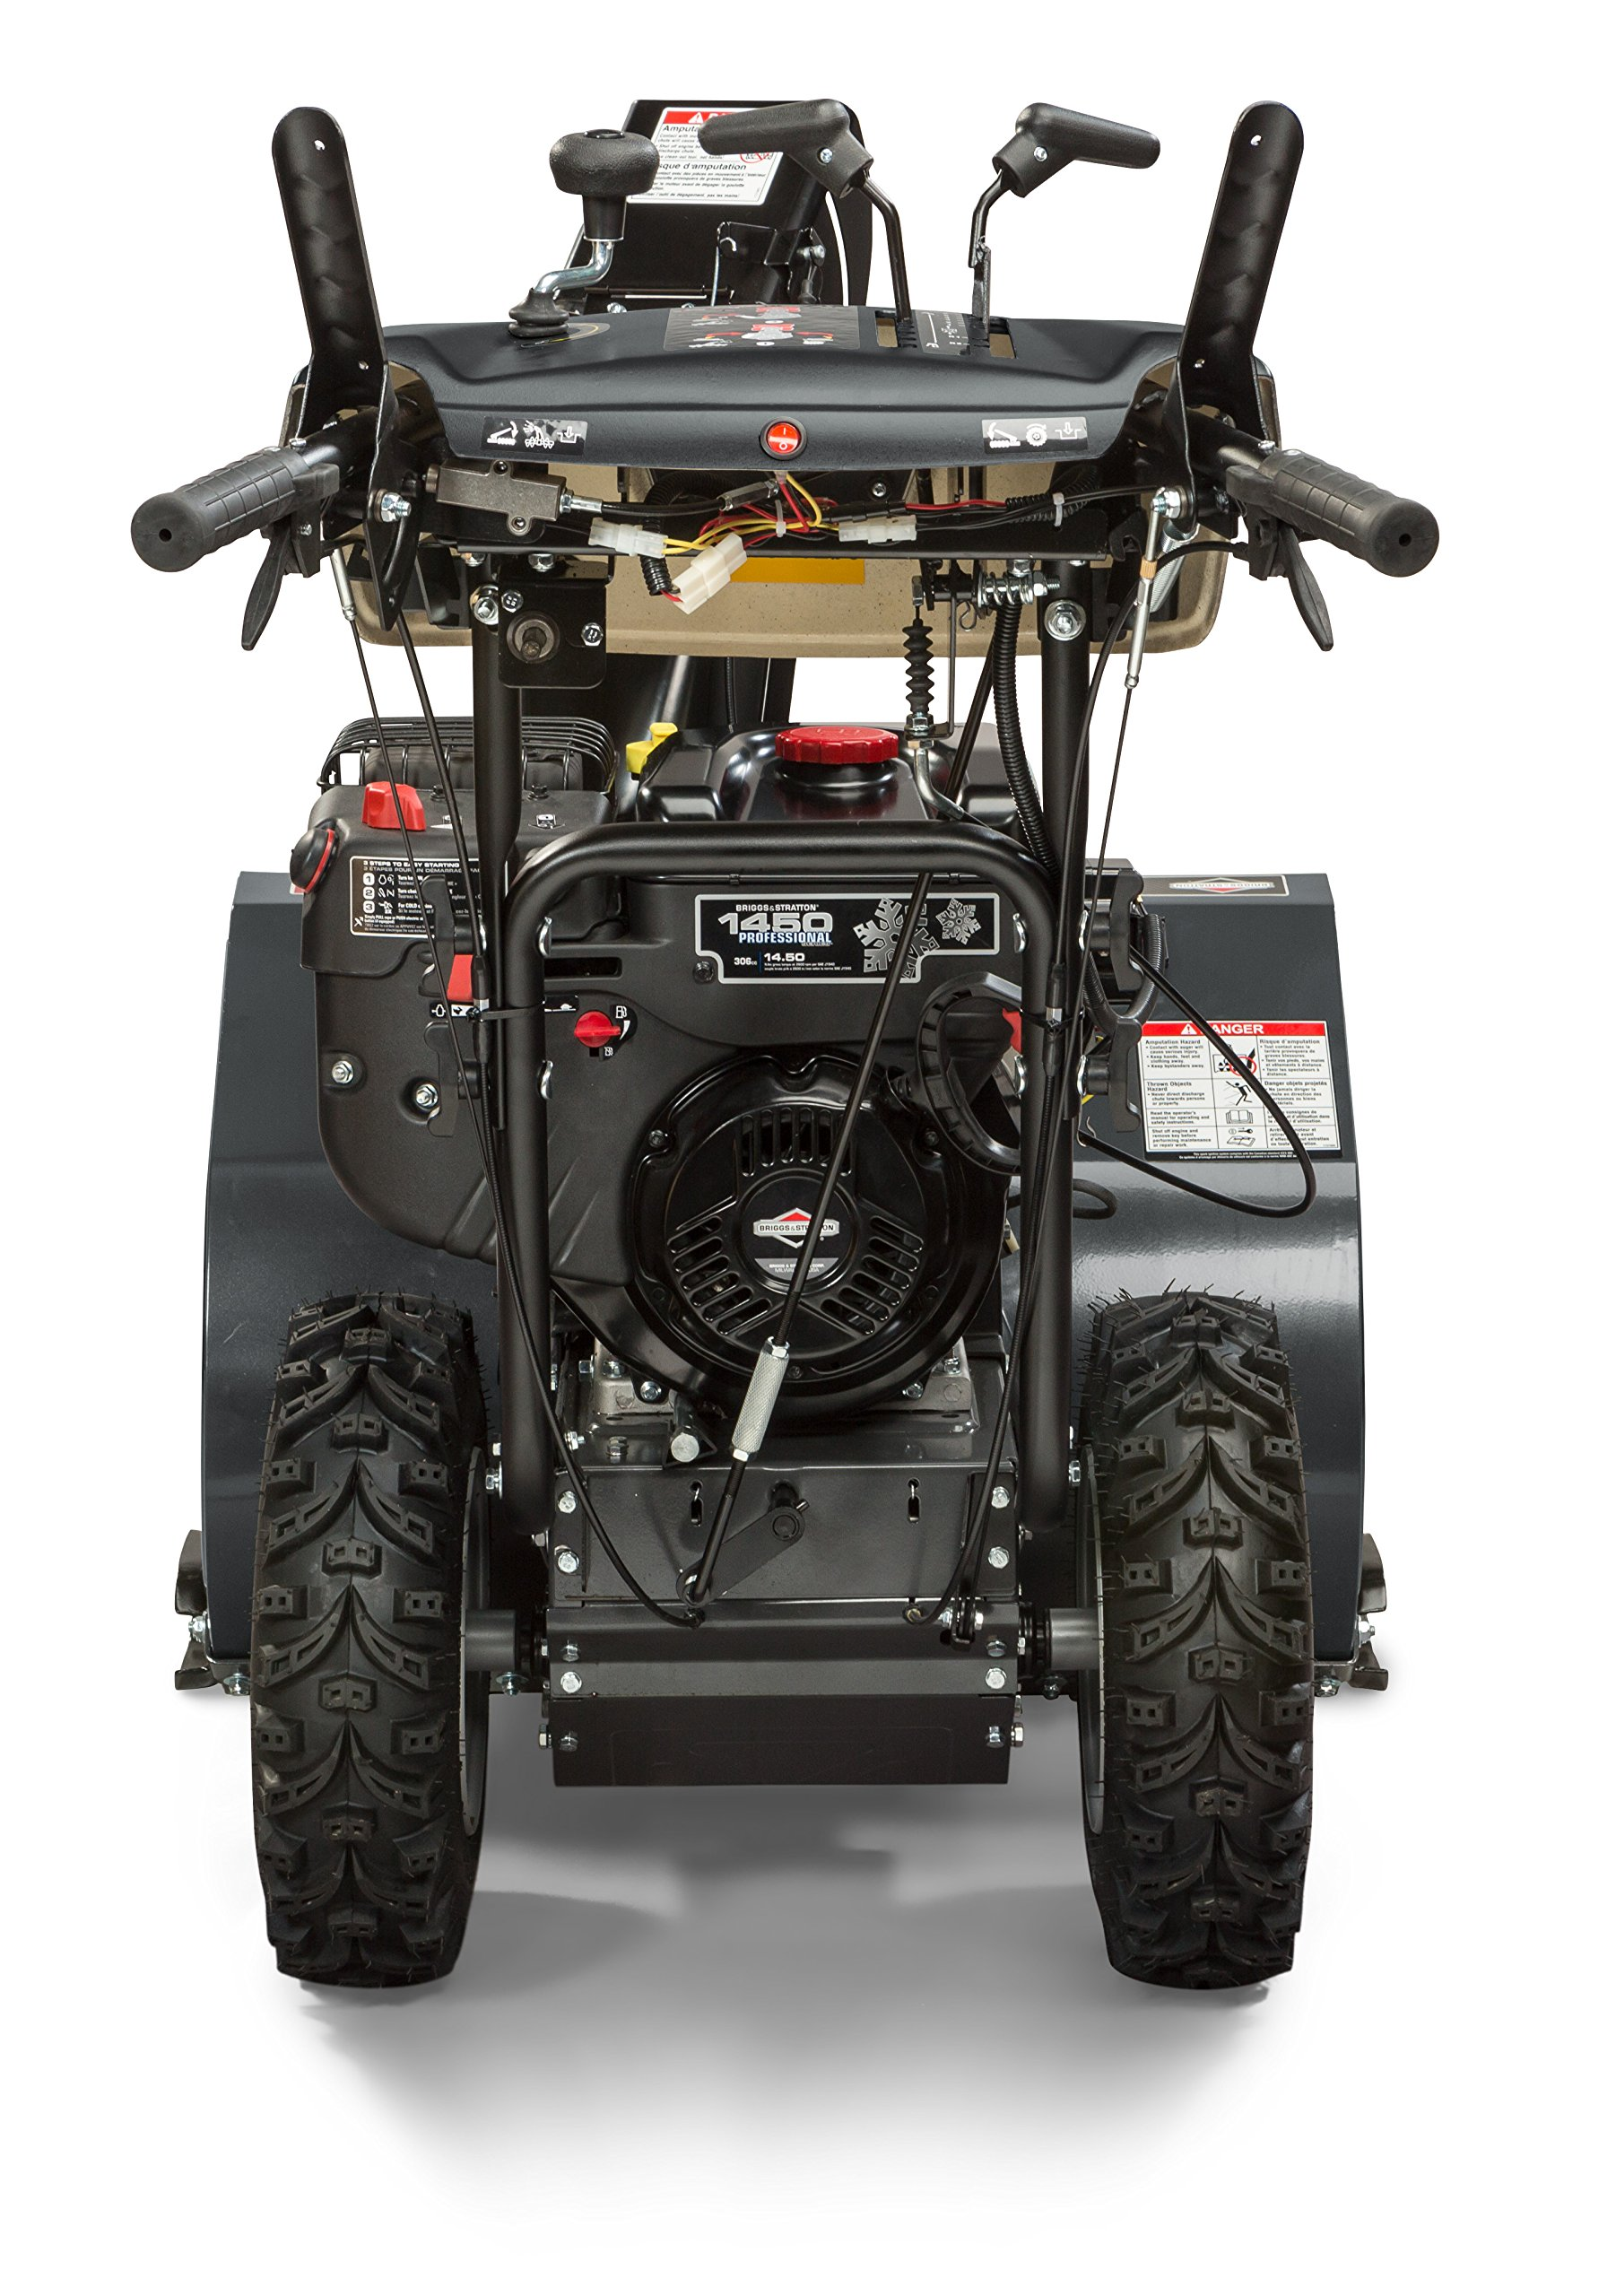 Briggs & Stratton 1530MDS Dual Stage Snowthrower Snow Thrower, 306cc by Briggs & Stratton (Image #2)